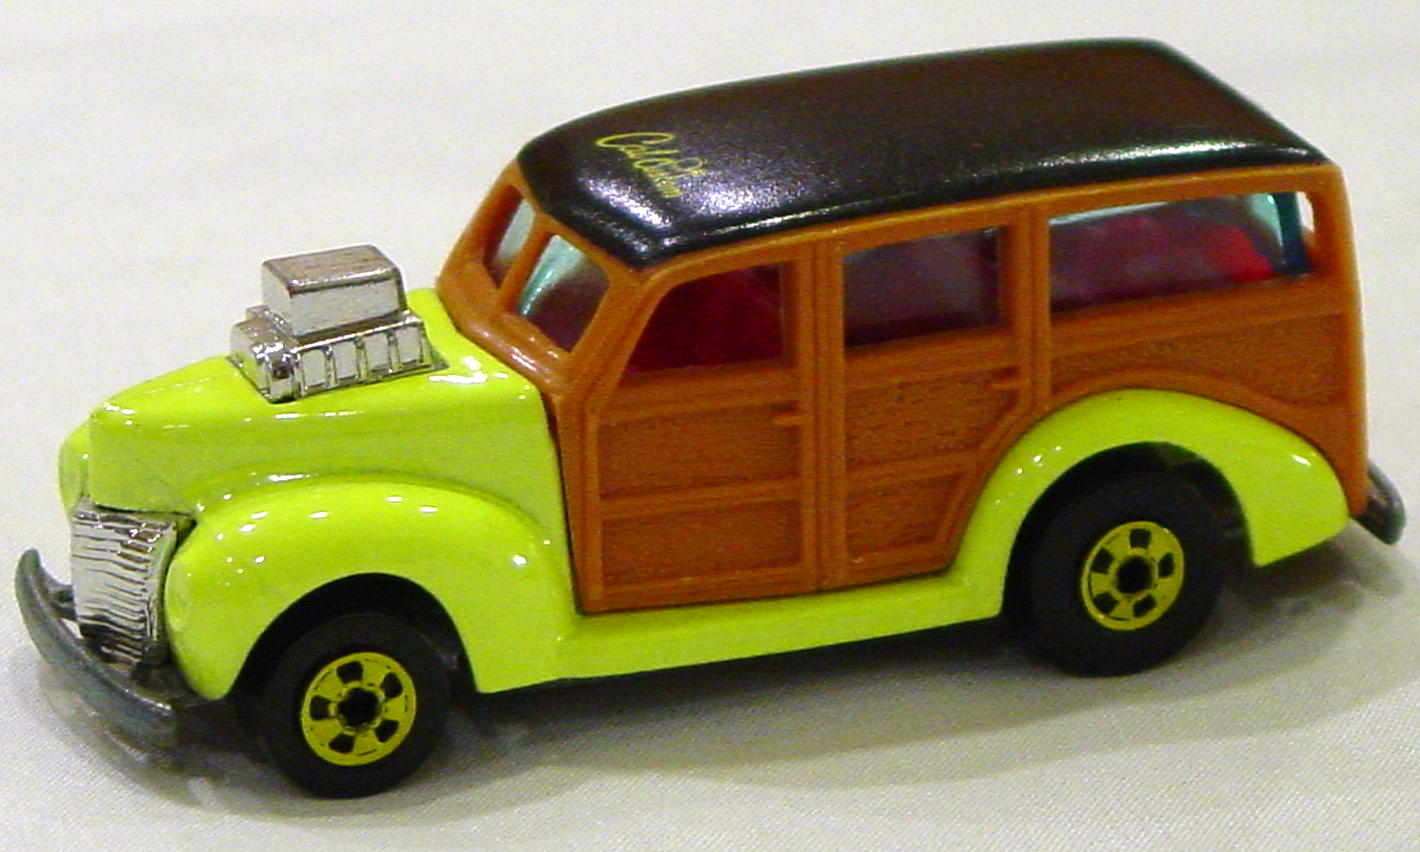 Blackwalls 1131 F 2 - 40s Woodie brit Yel-green pink interior BWY Cal Custo